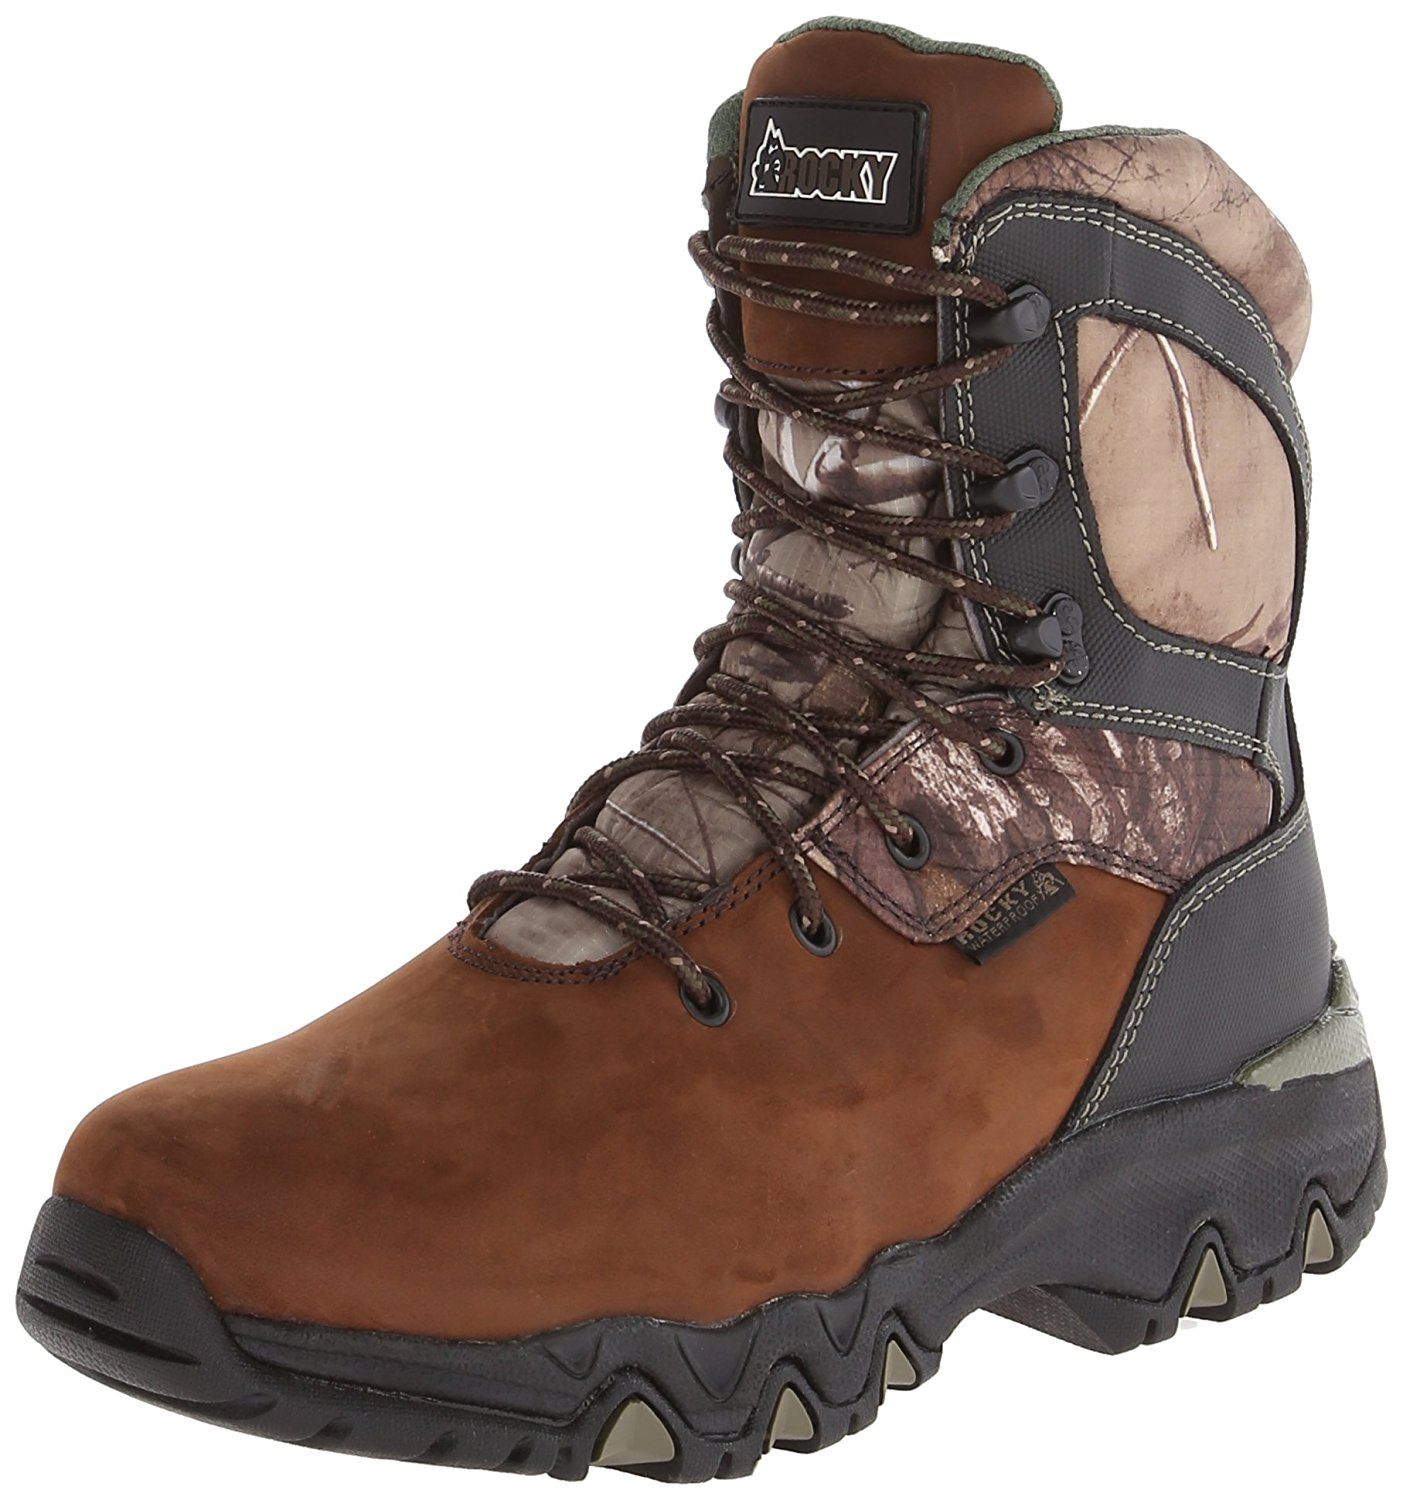 c517e4de59a Rocky Men's 8 Inch Bigfoot 103 Snow Boot * For more information ...